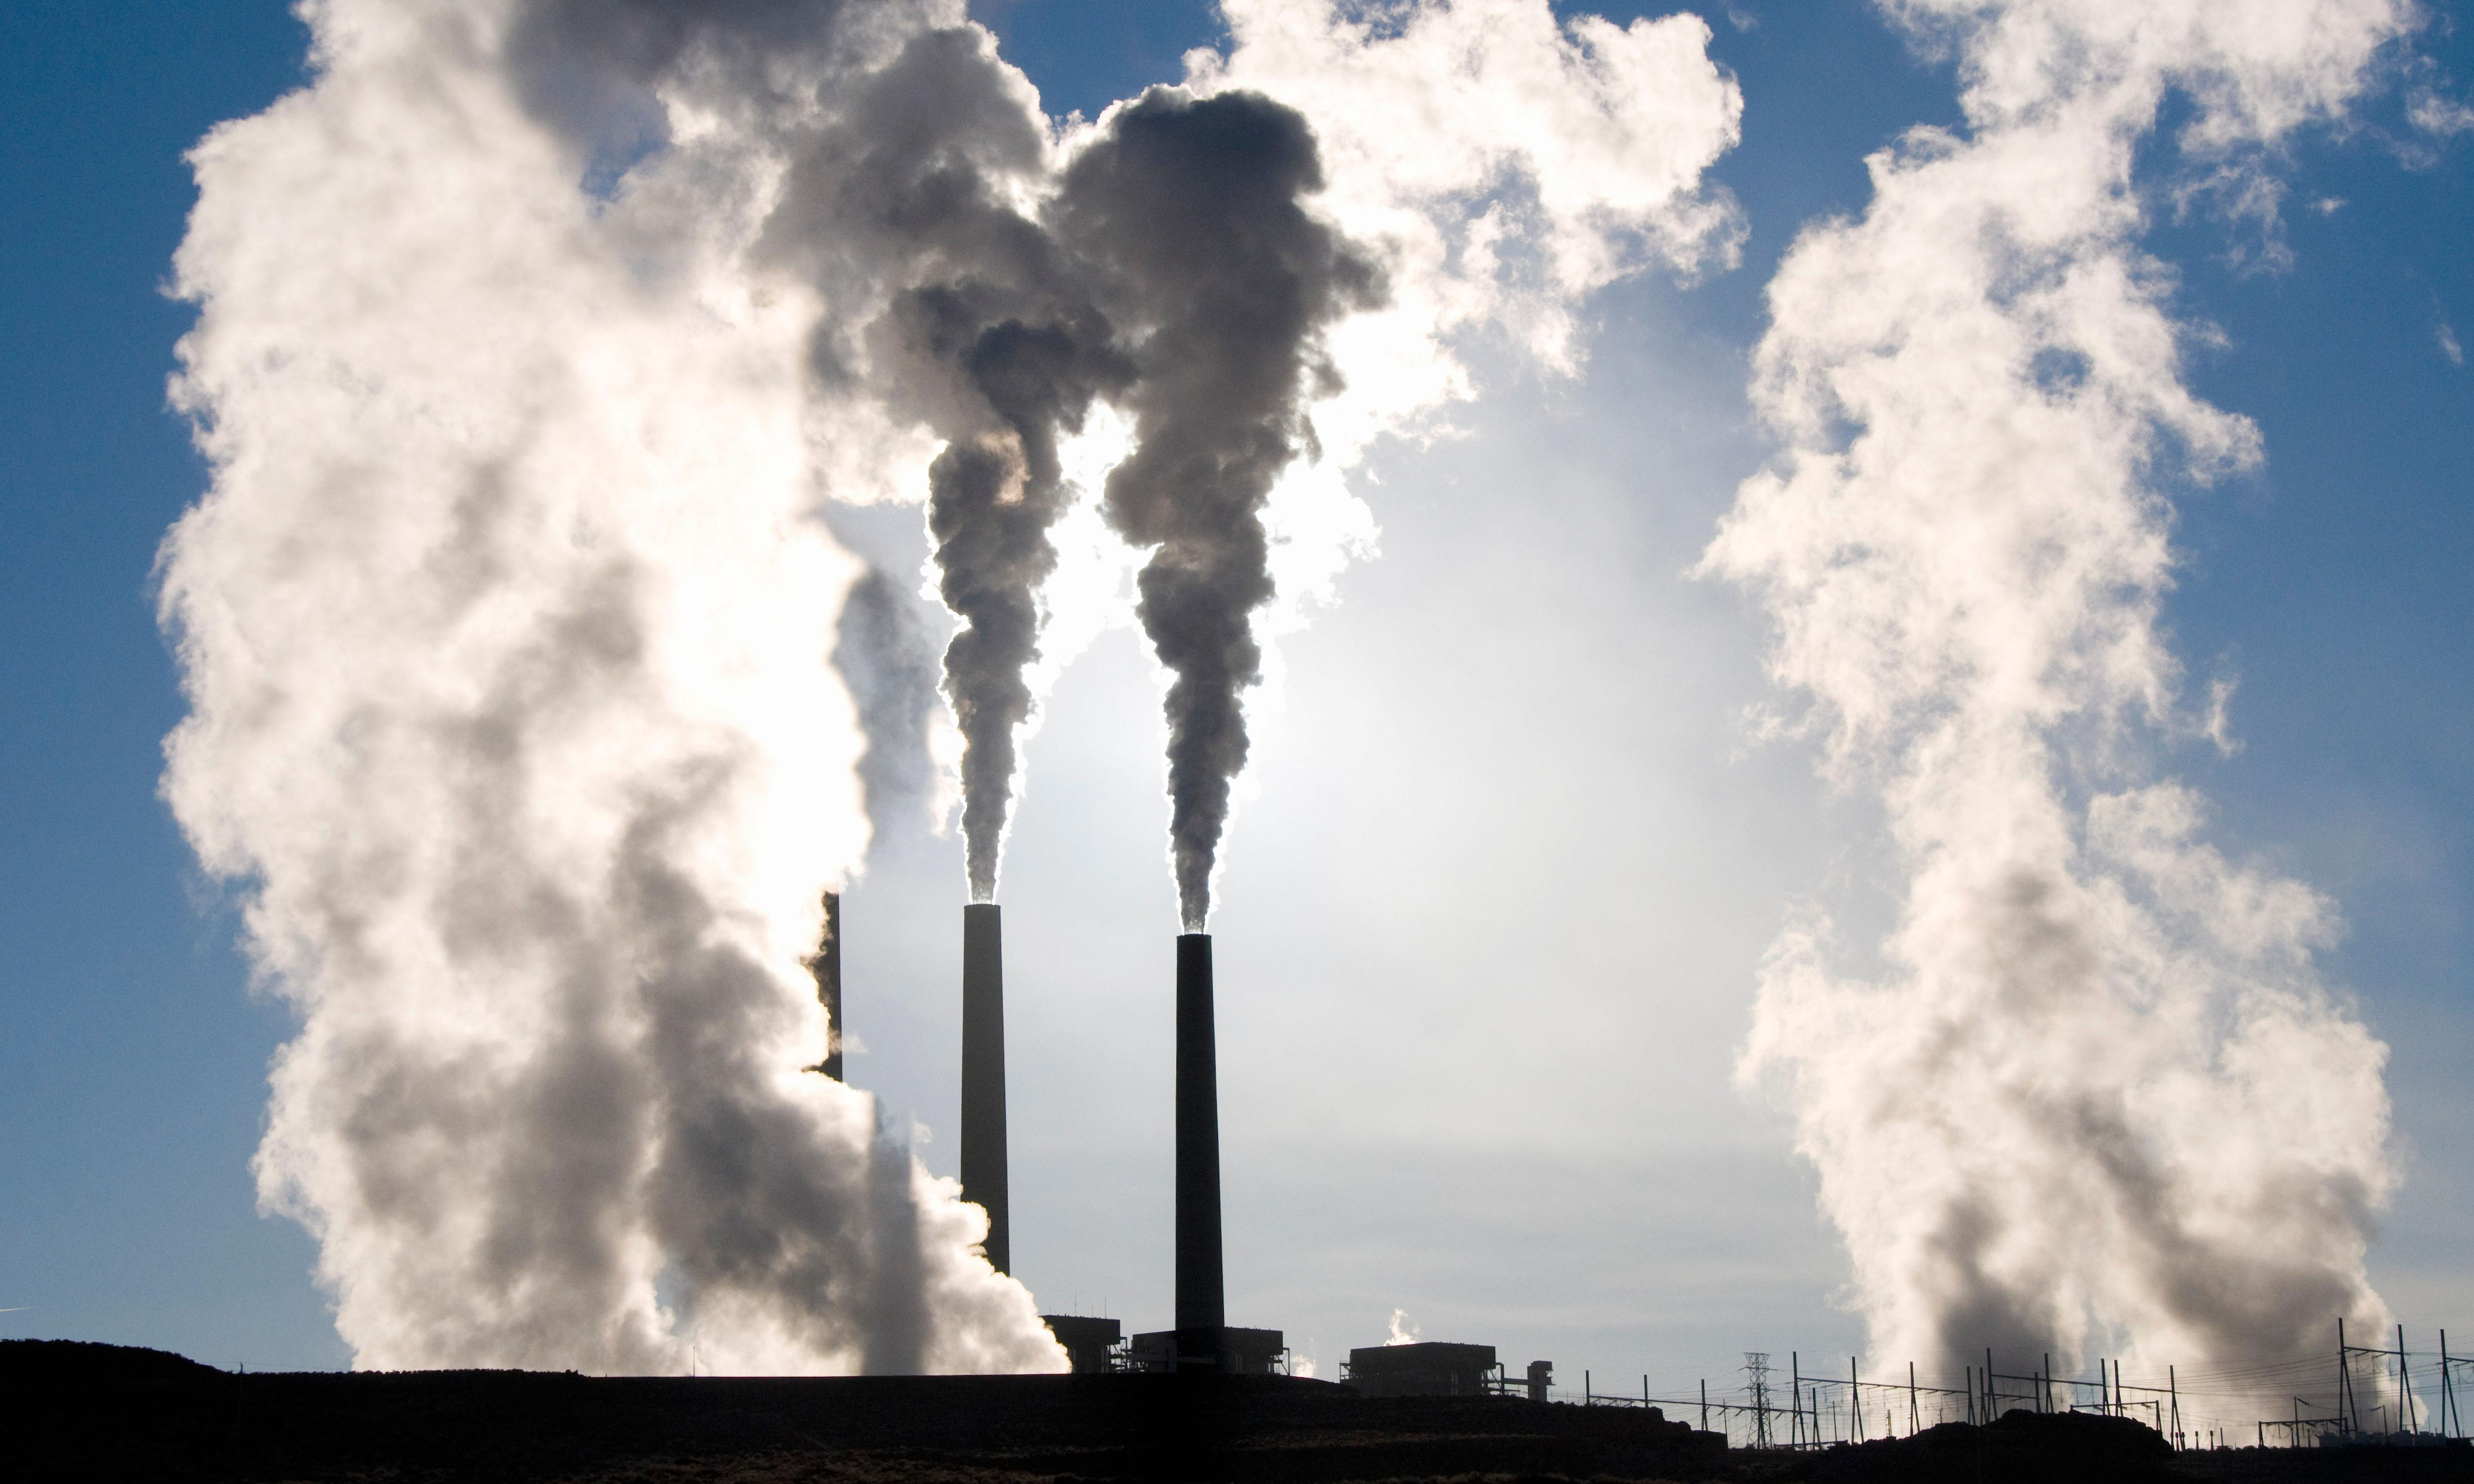 Scientists fired by Trump warn particle pollution standards don't protect people